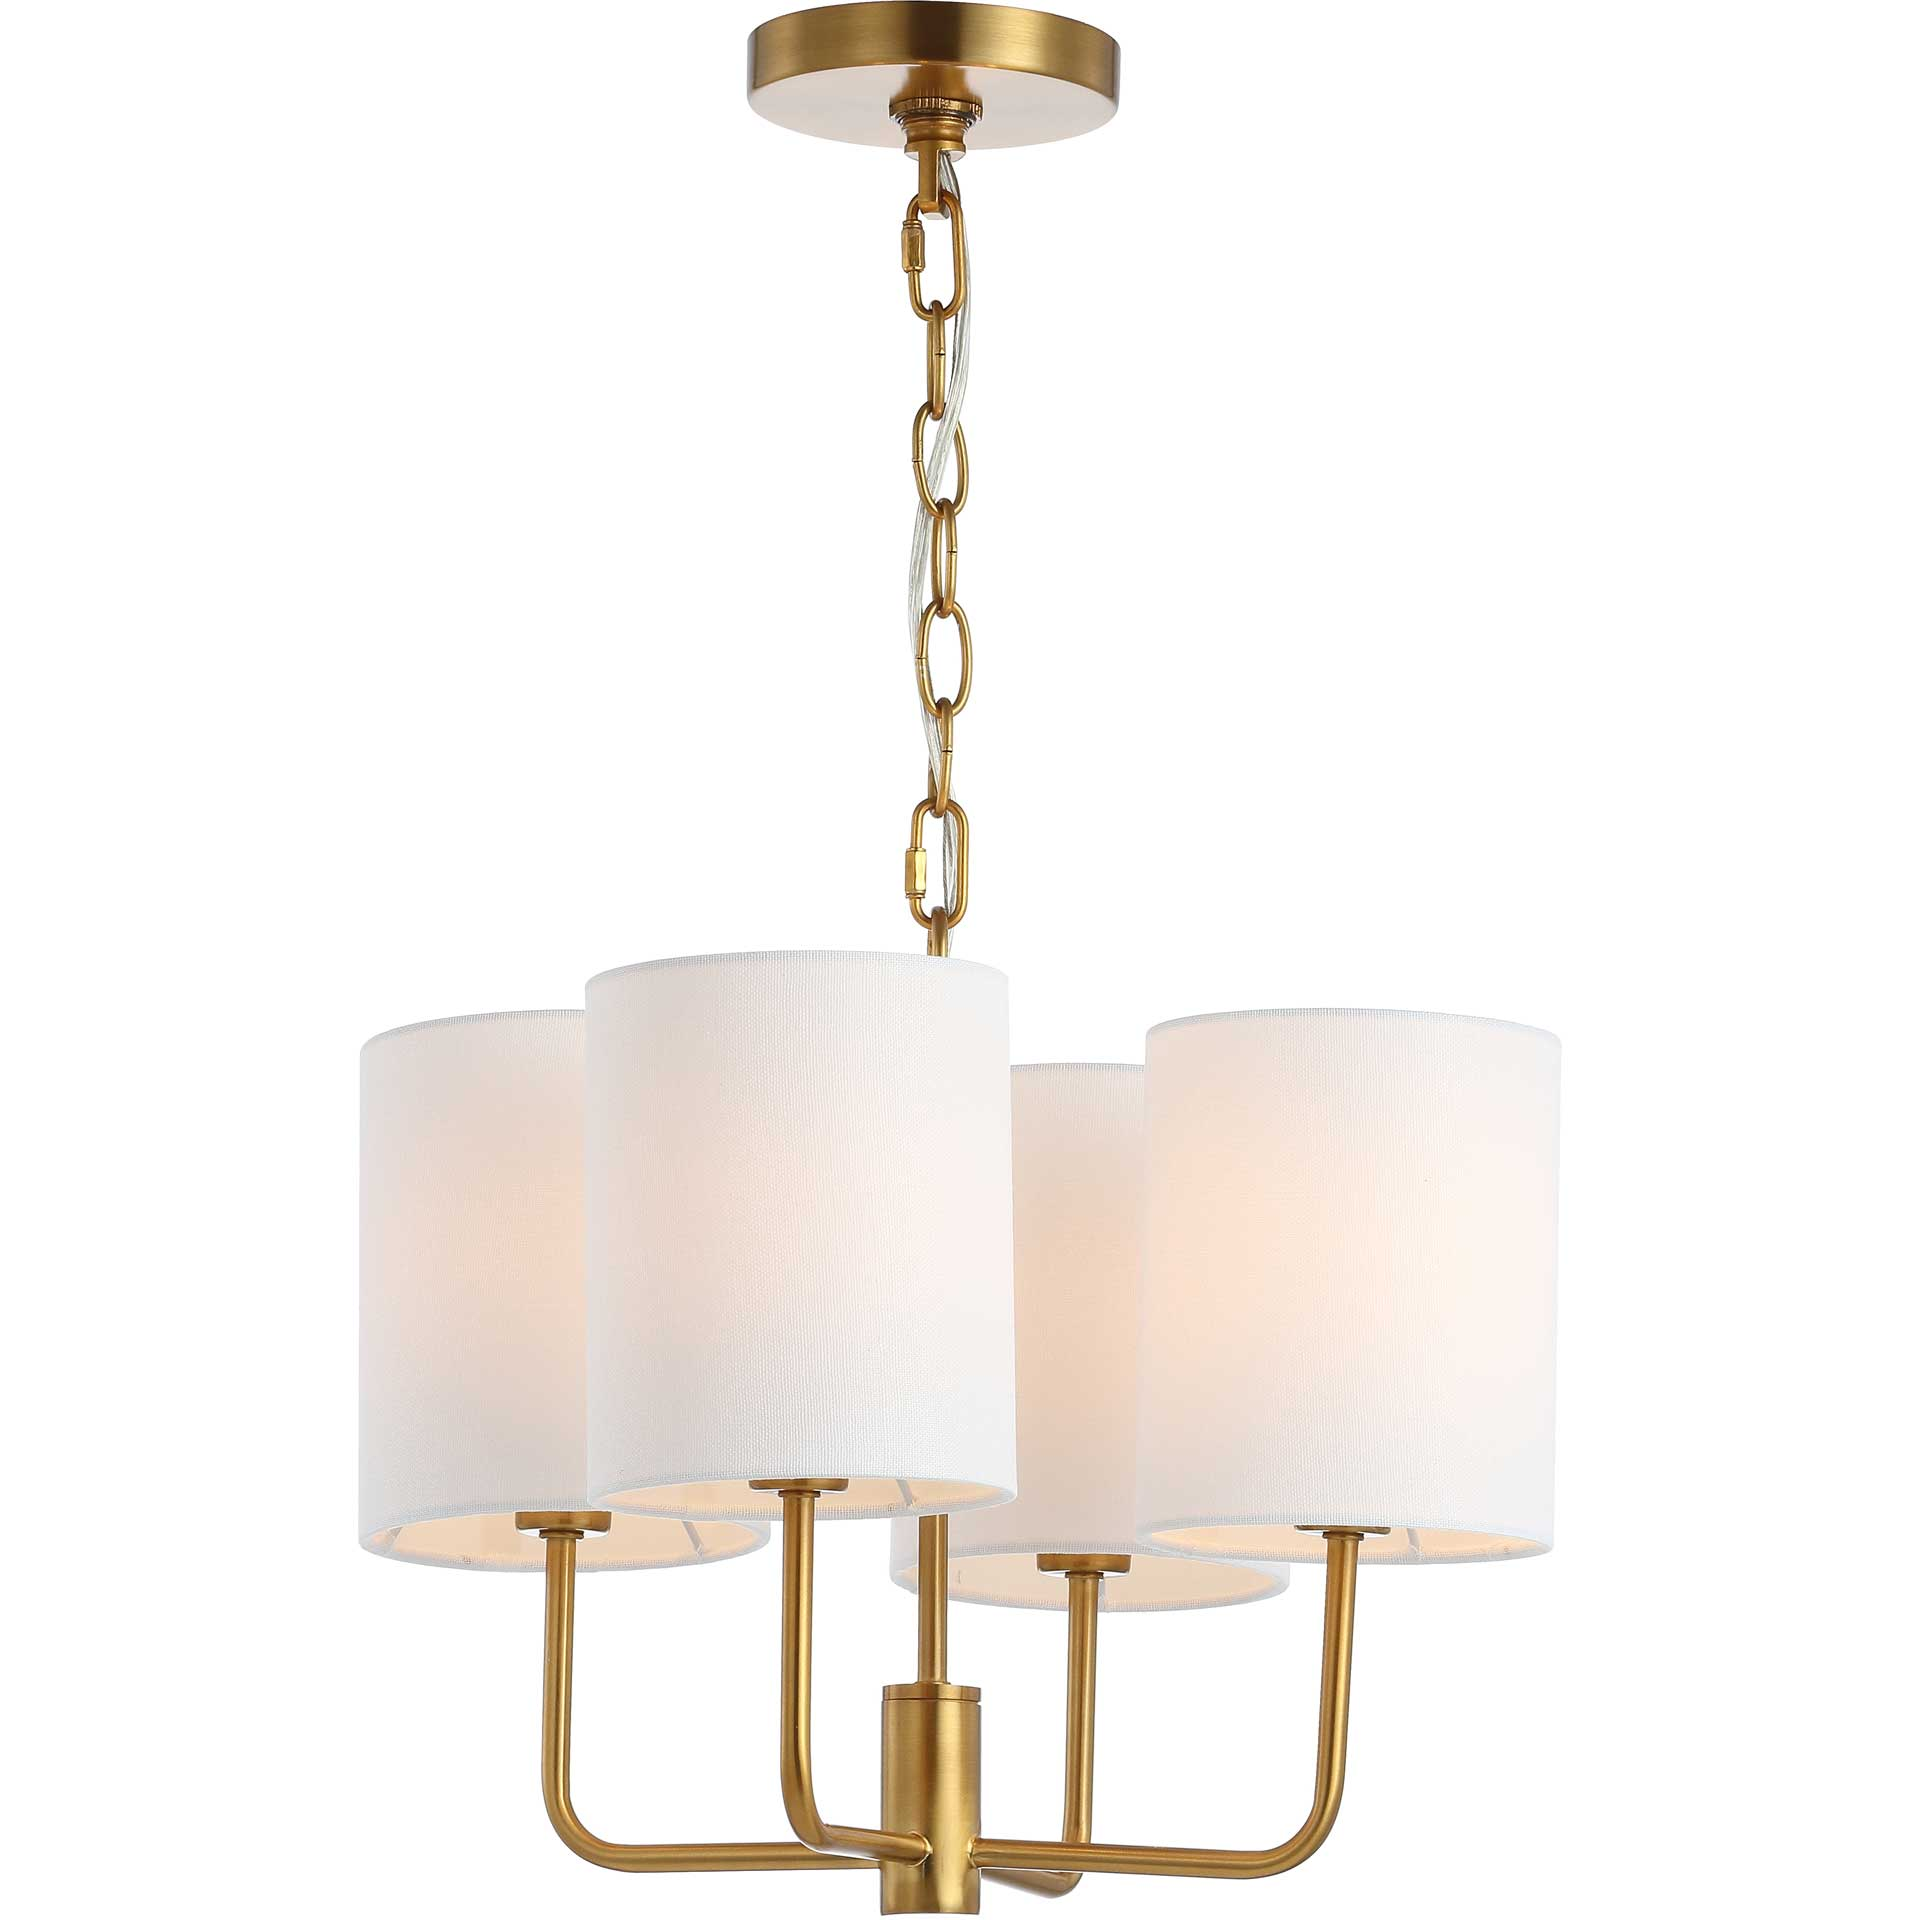 Elysse Chandelier Brass Gold